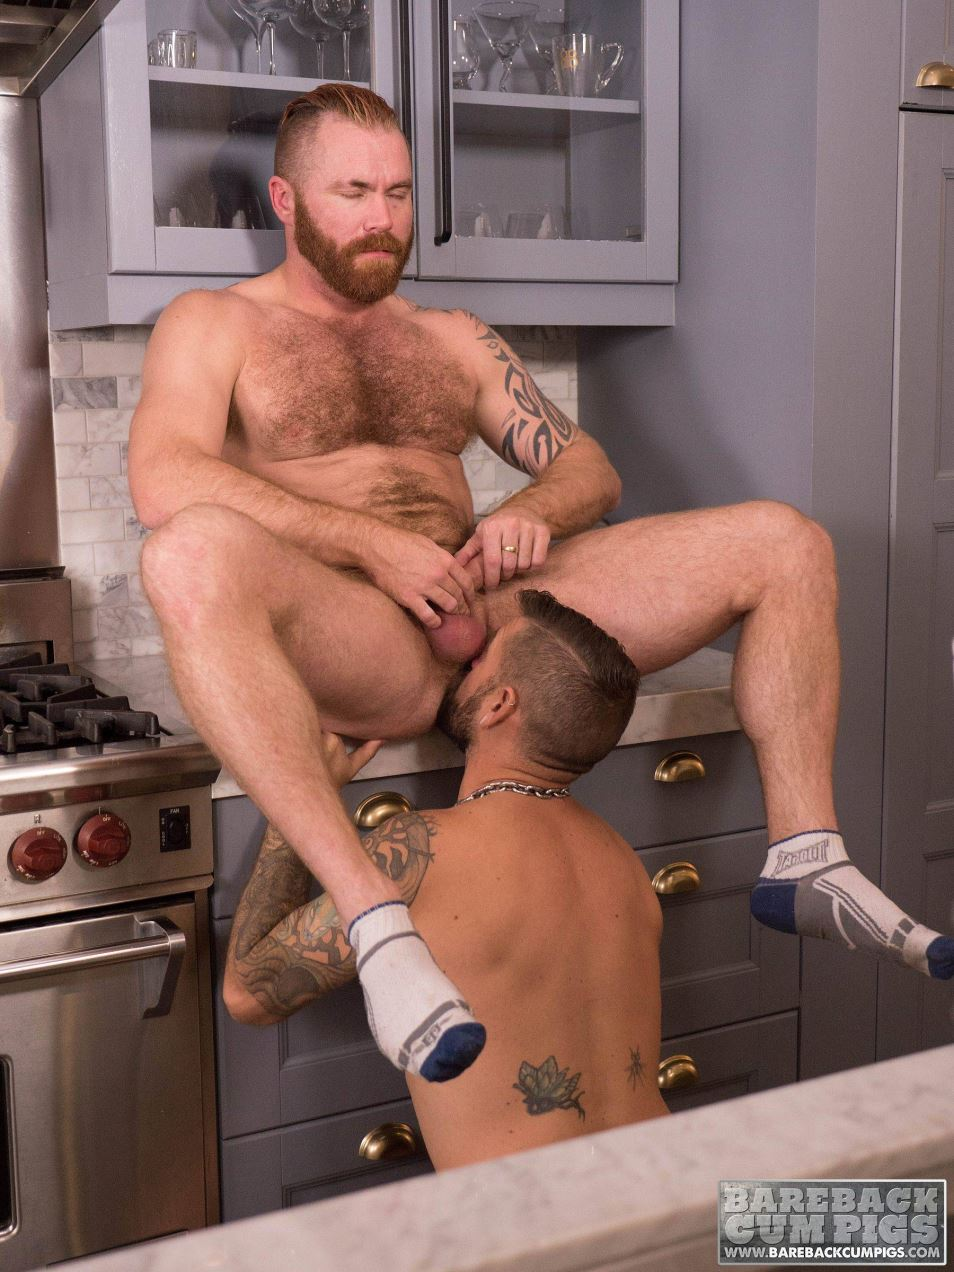 Jon Shield and Zac Acland Bareback Gay Porn